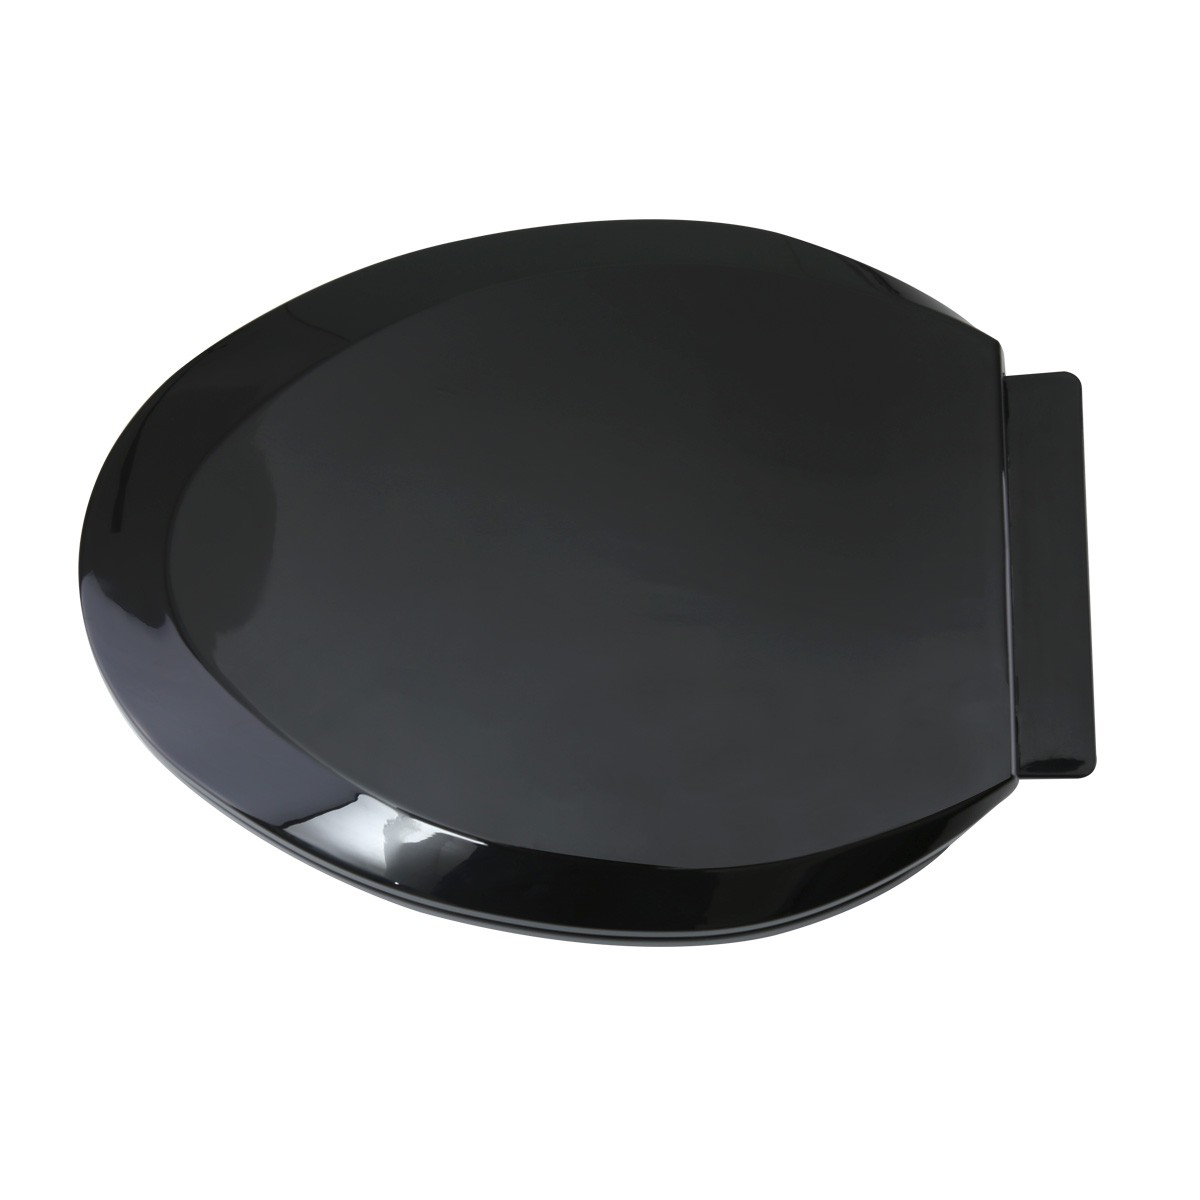 2 No Slam Toilet Seat Easy Close Black Plastic Elongated novelty decorative replacement loo commode lavatory custom unusual luxury quality standard color design pretty